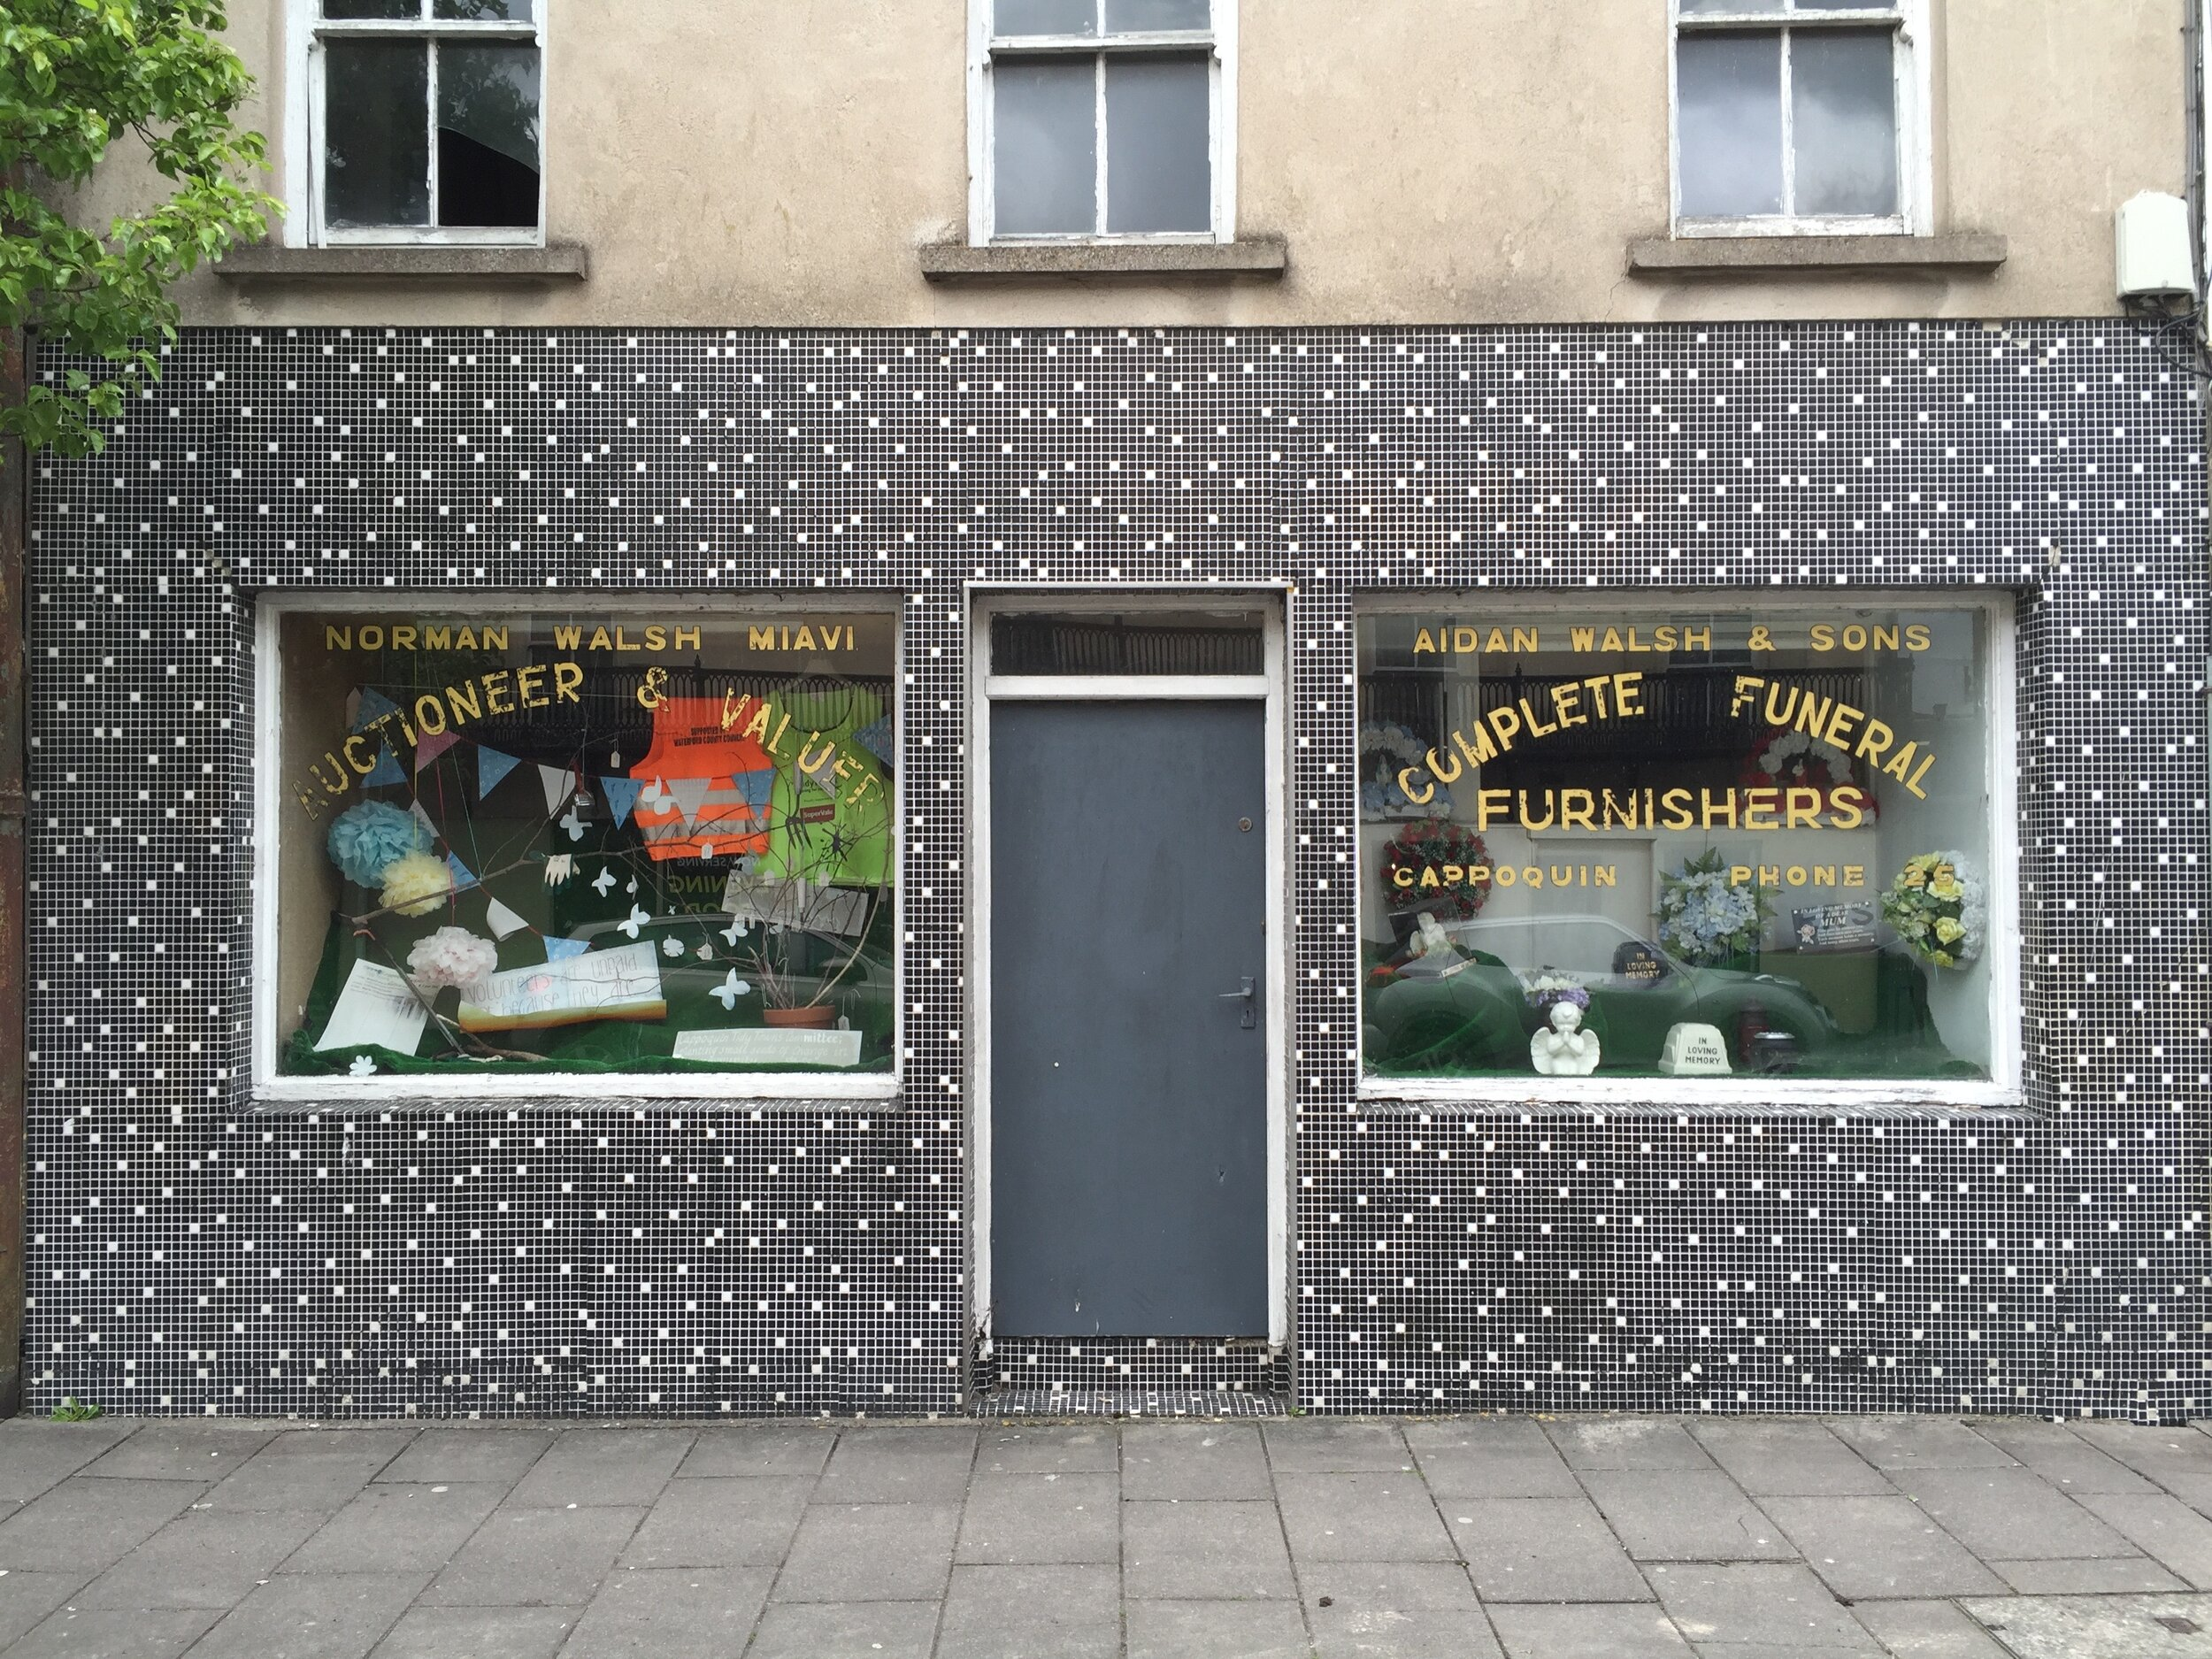 Walsh Auctioneers & funeral furnishers, Cappoquin, Co. Waterford.jpg